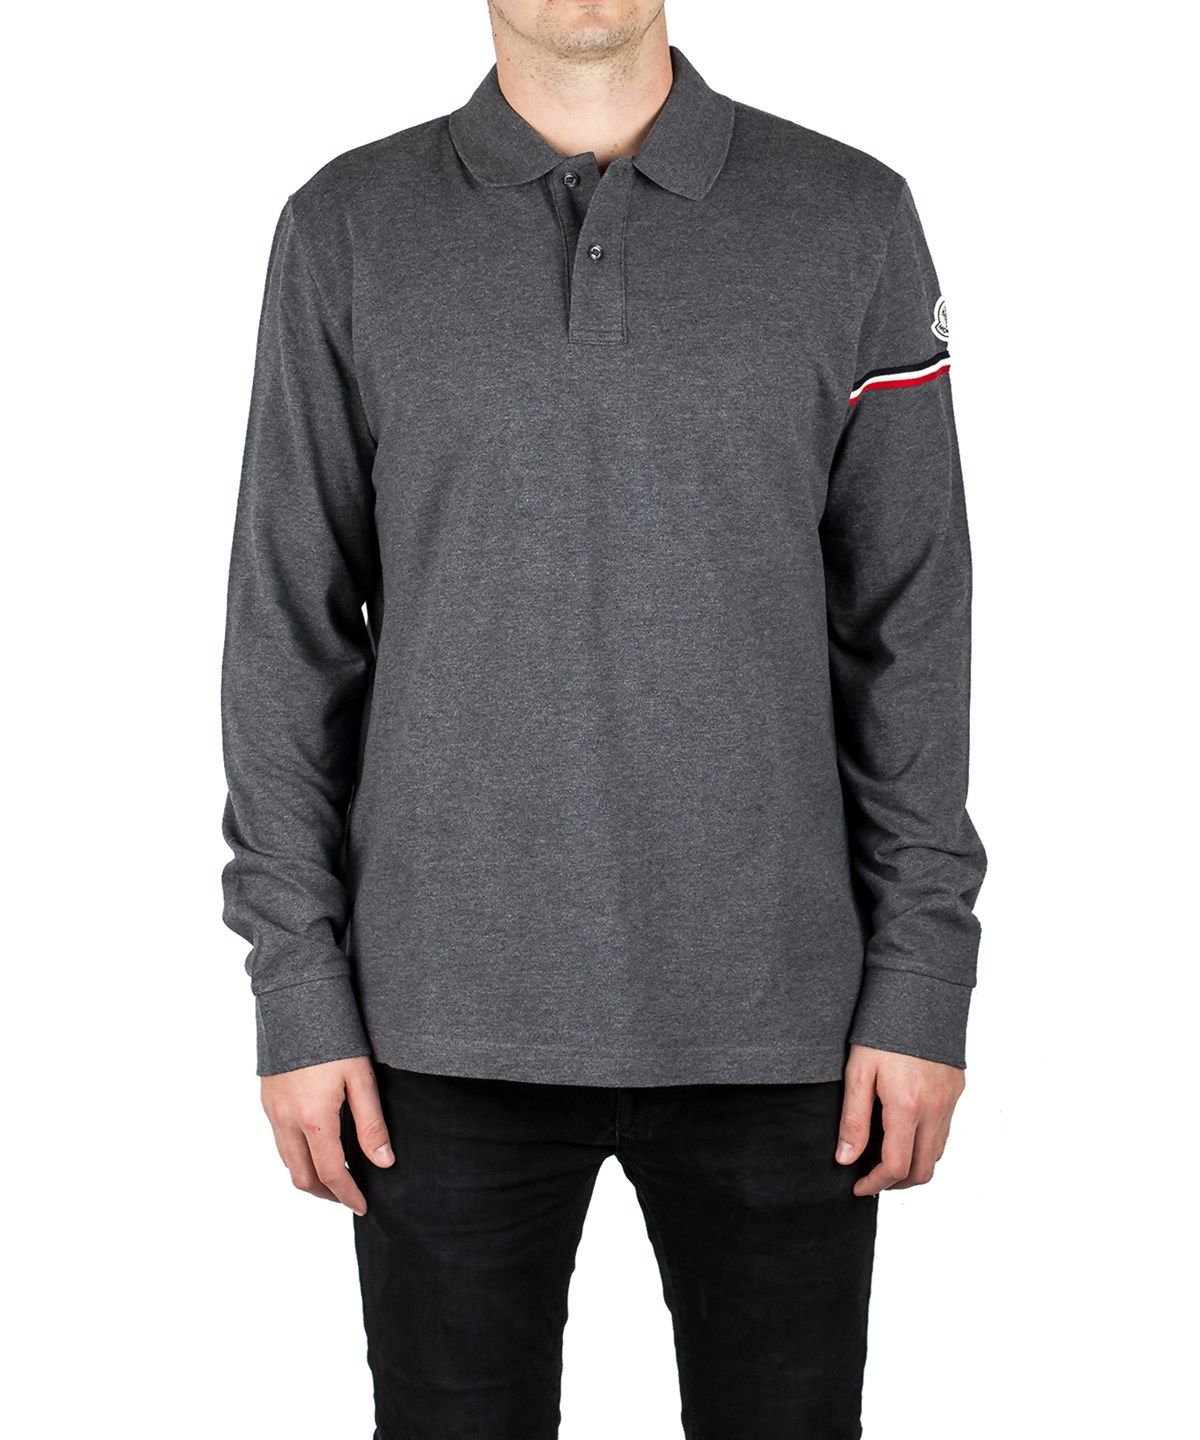 91a6eac0851d MONCLER Moncler Men S Long Sleeve Polo Shirt Grey .  moncler  cloth ...